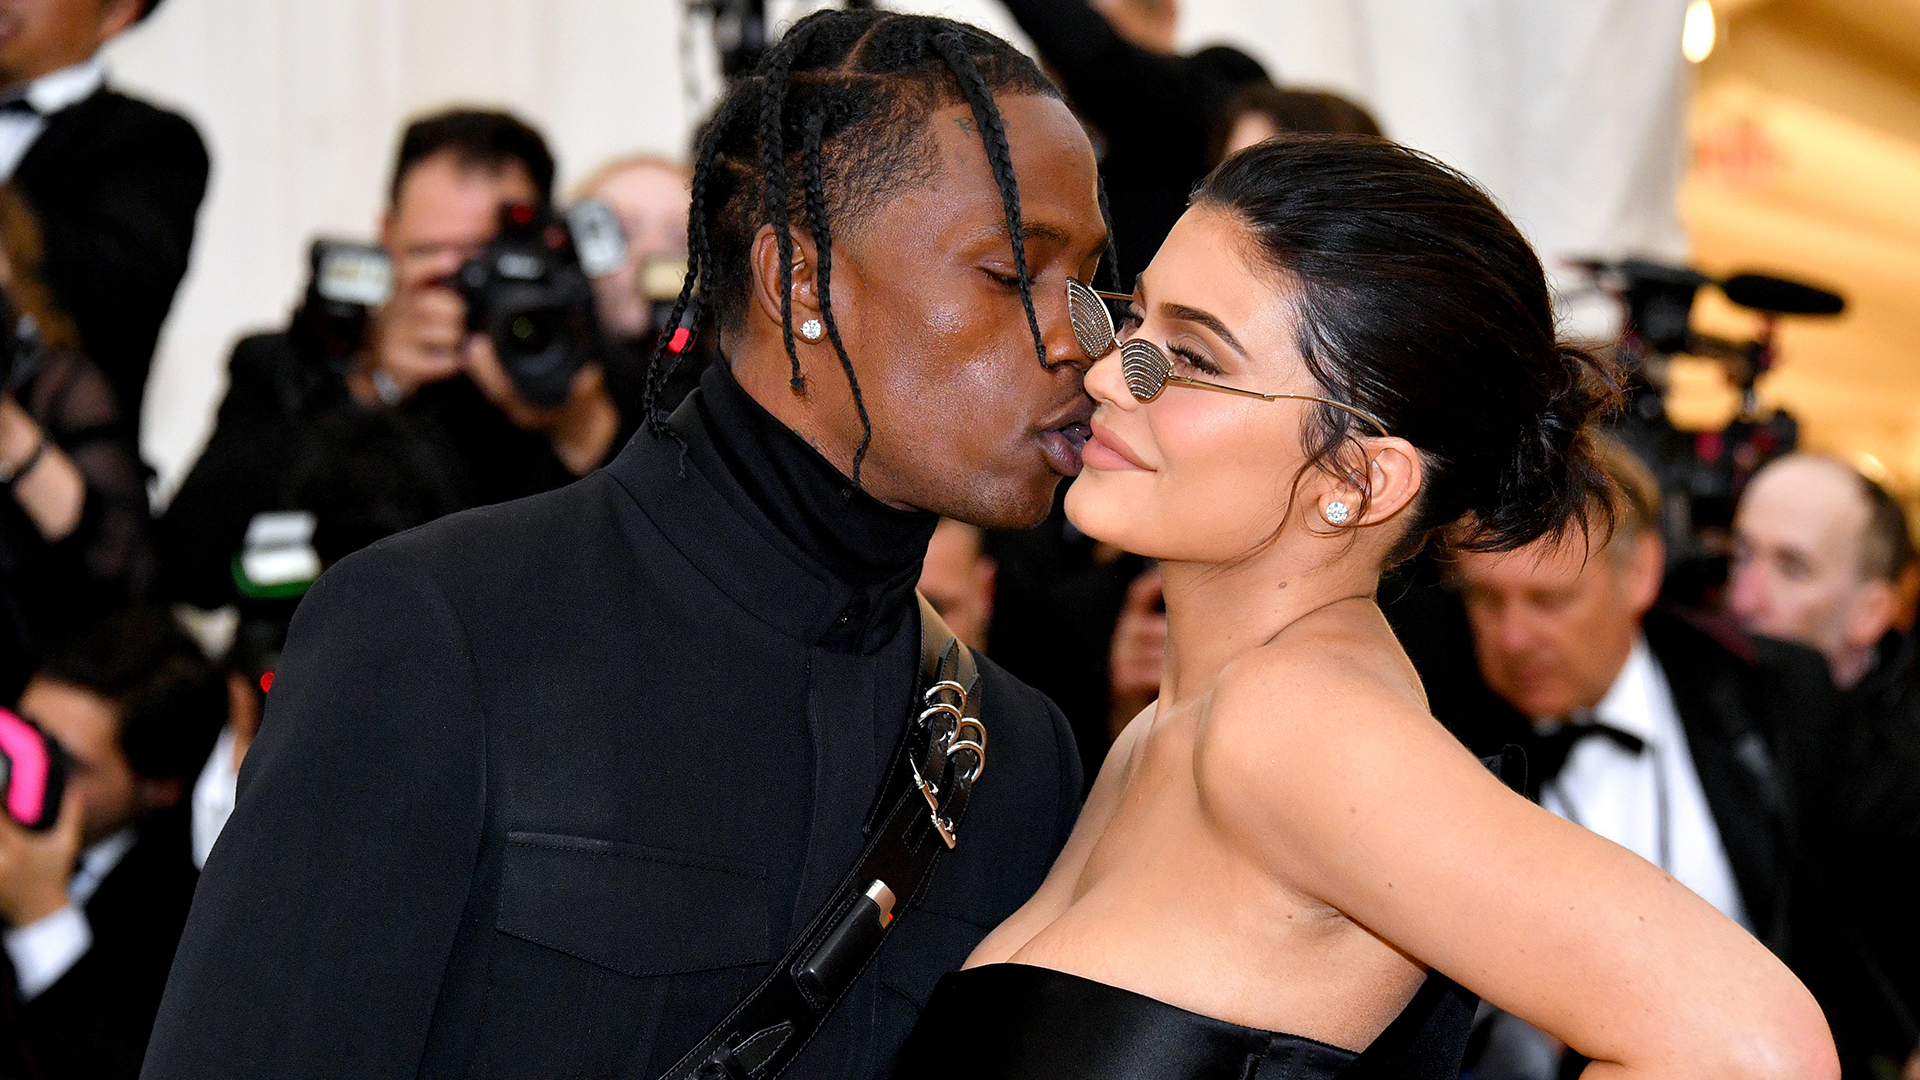 Travis Scott says he wants to marry Kylie Jenner soon